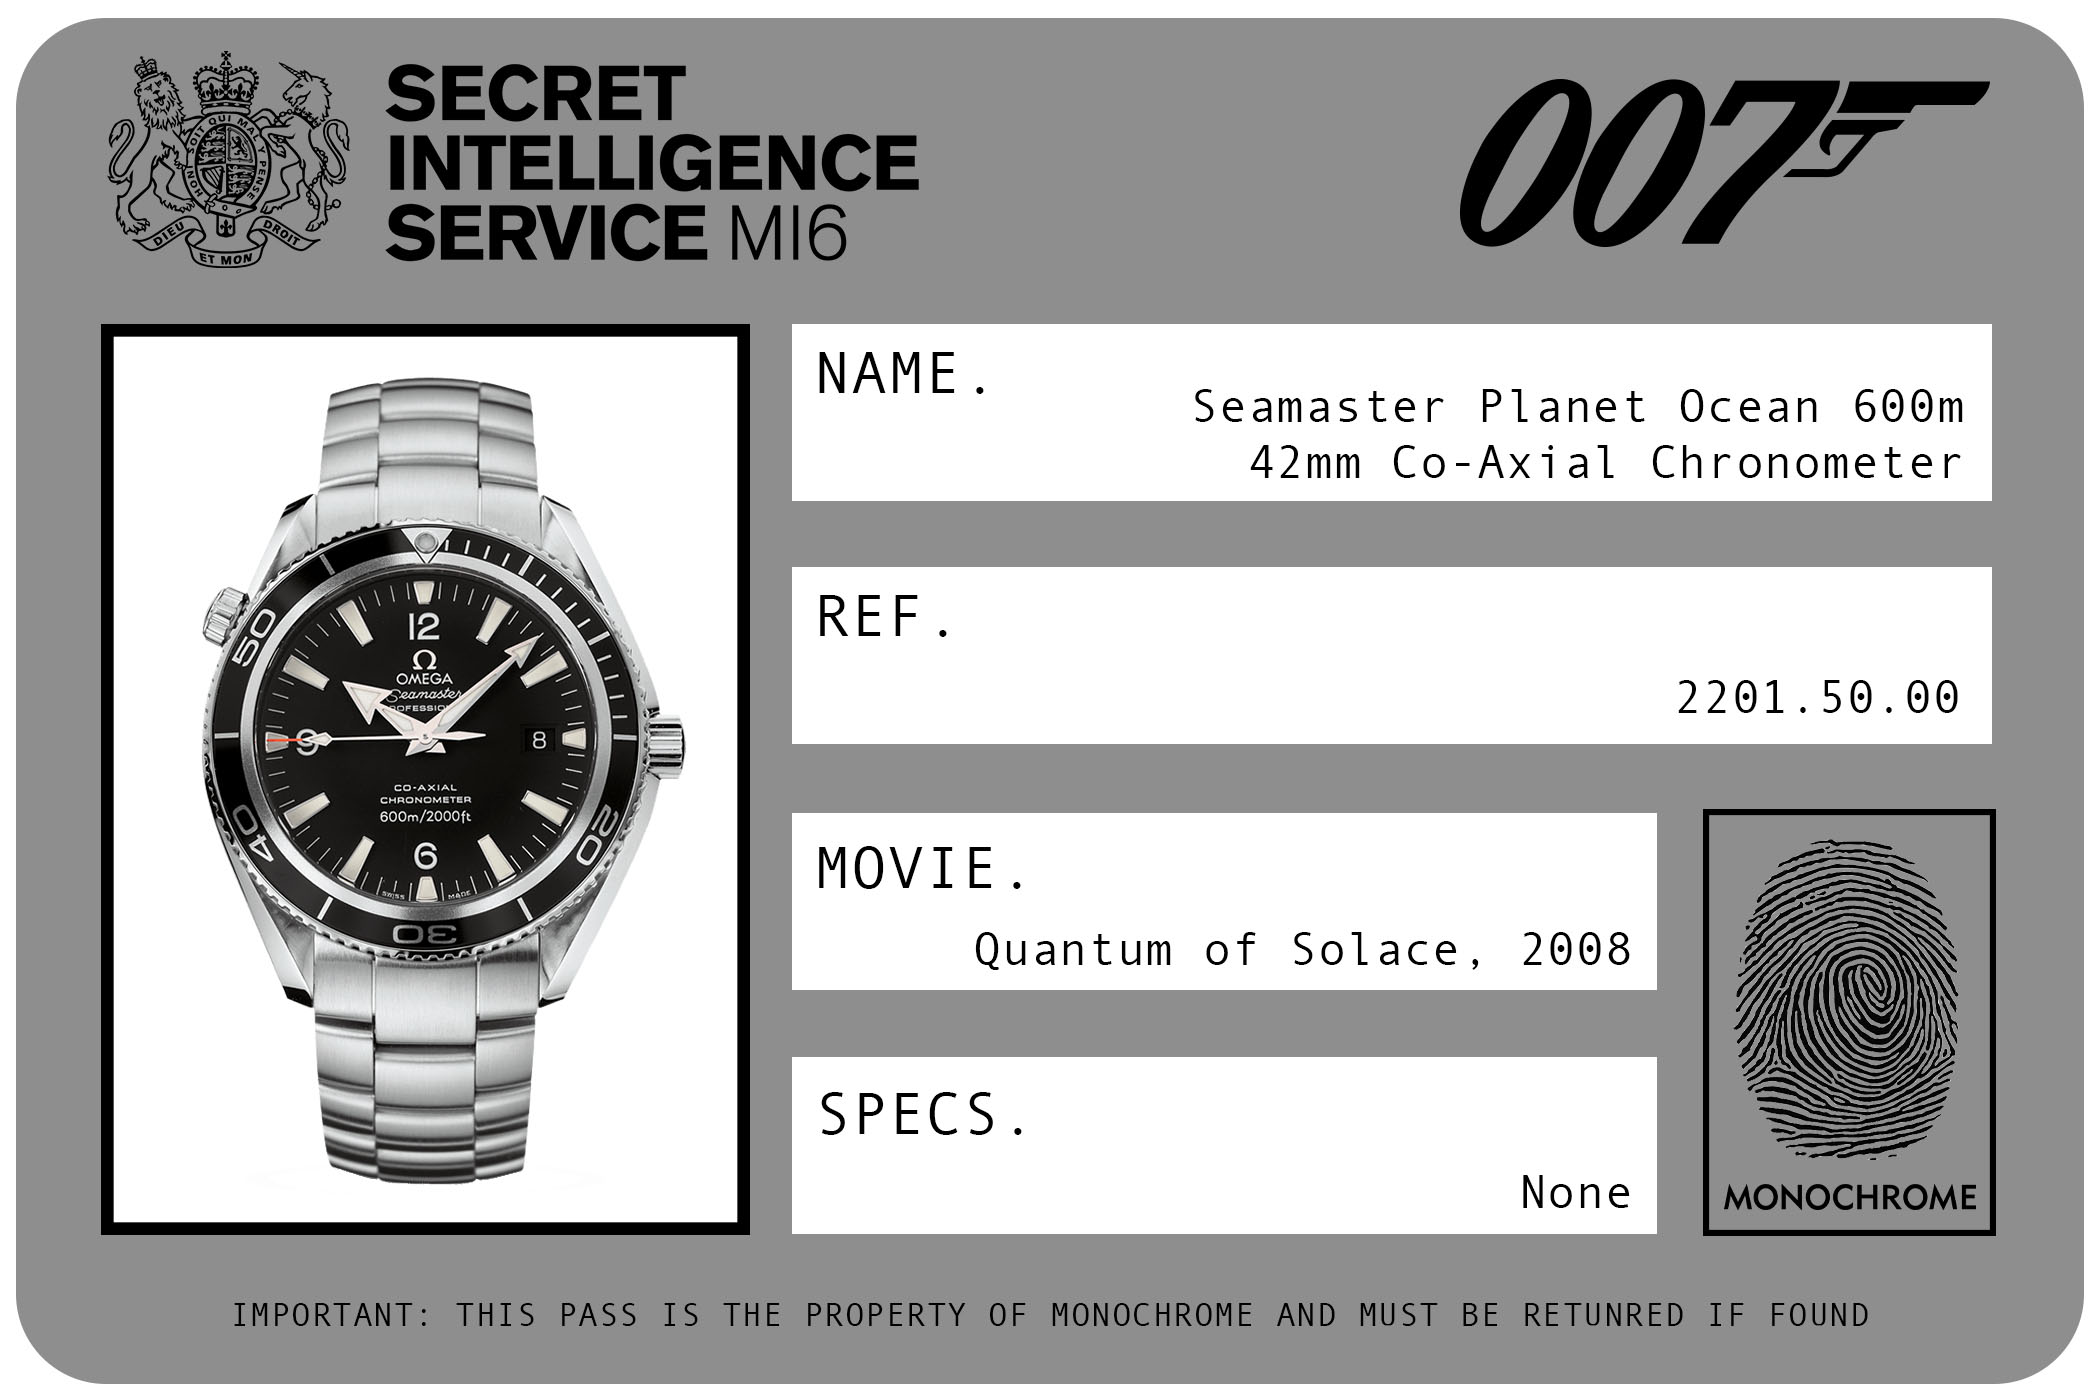 2008 - Omega Seamaster Planet Ocean 600m 42mm Co-Axial Chronometer 2201.50.50 James Bond Quantum of Solace ID Card